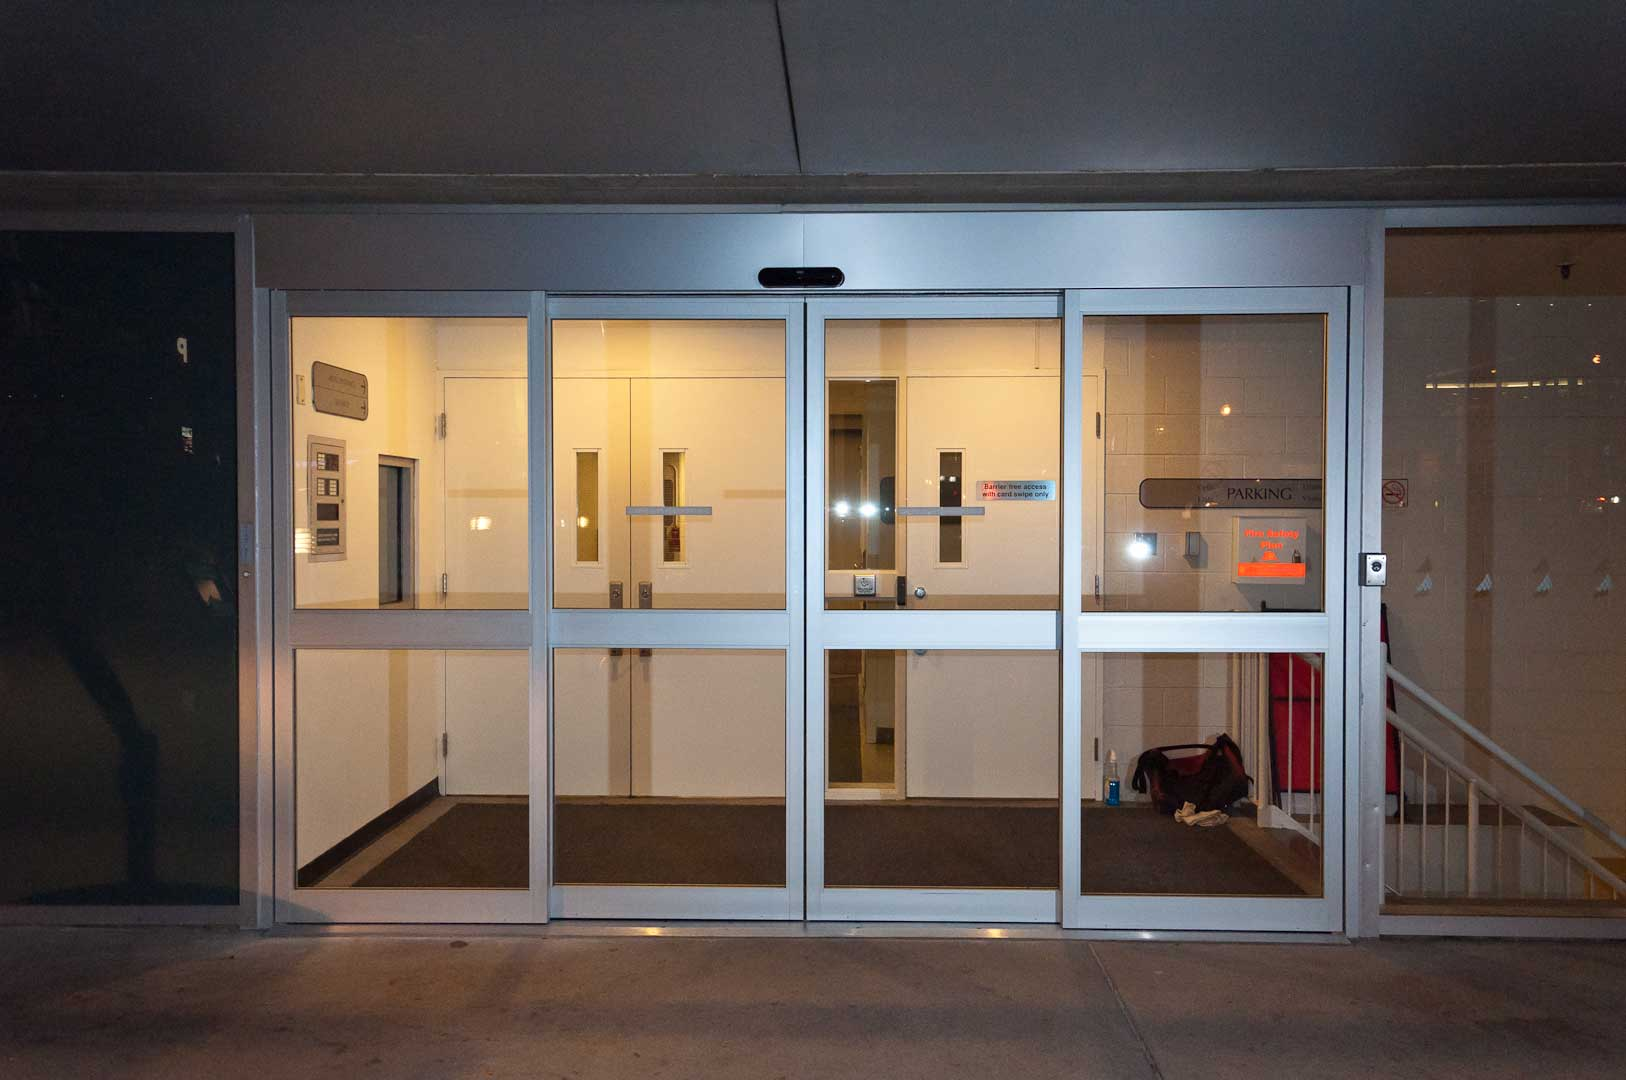 Musician's entrance sliding glass doors installed in Toronto by Explore1.ca